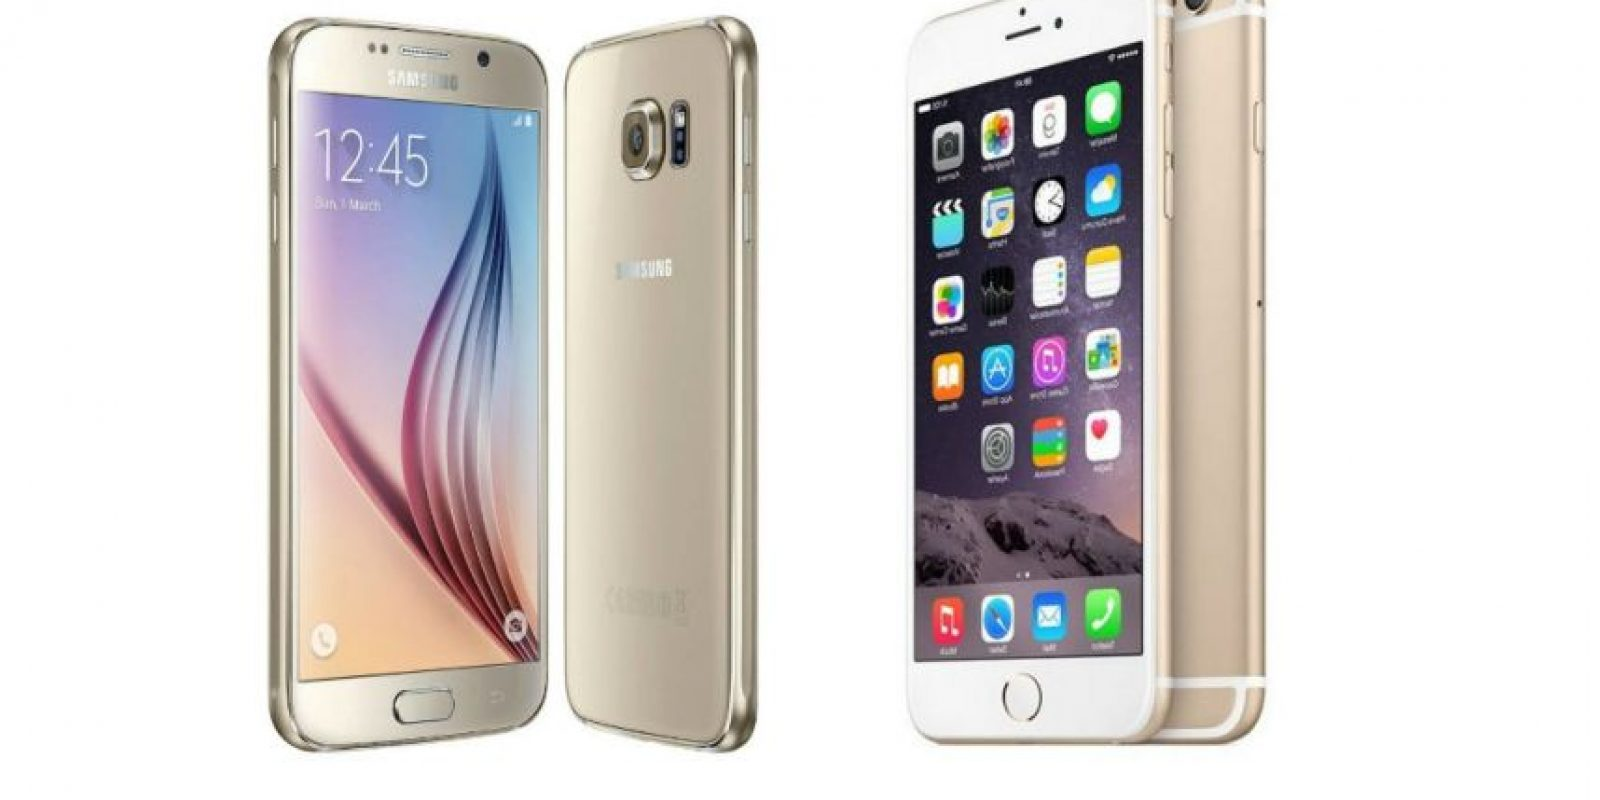 Es más costoso el Samsung Galaxy S6 que el iPhone 6. Foto: Samsung / Apple